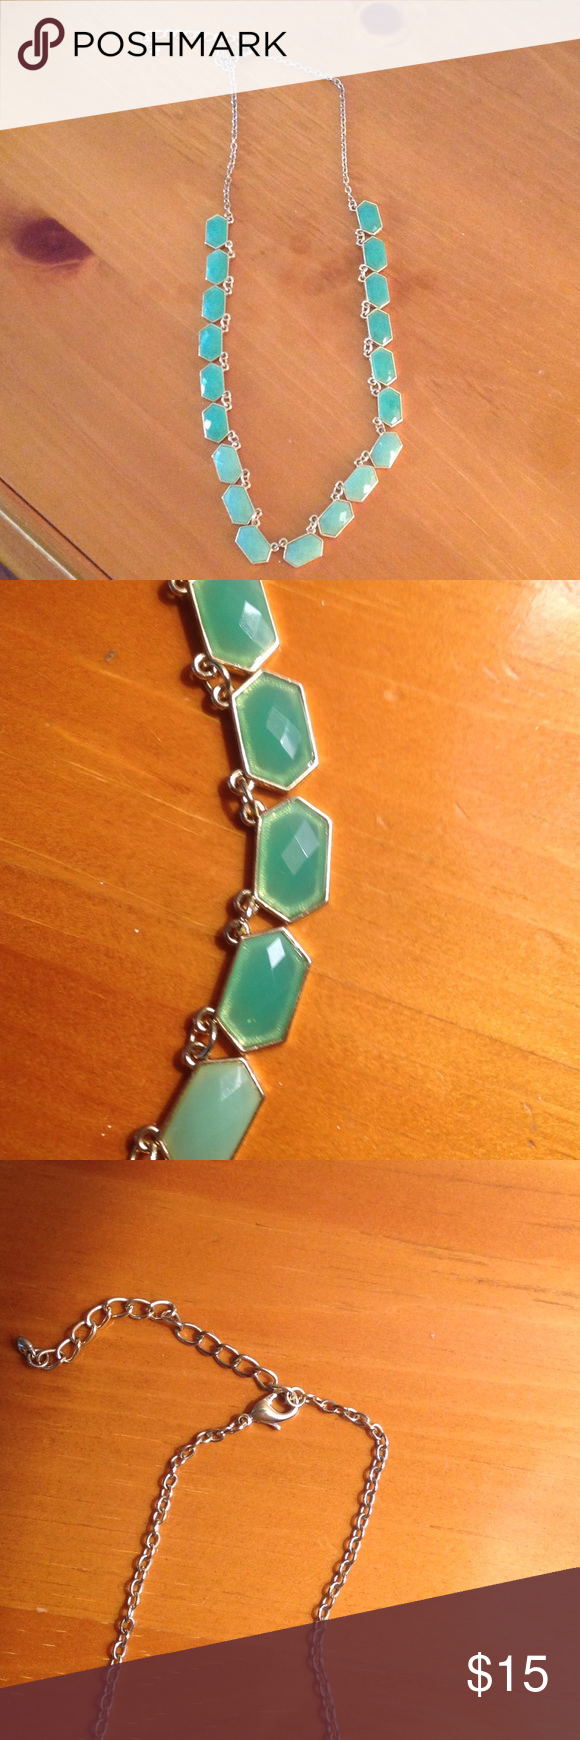 """J Crew necklace Beautiful light green necklace. Hangs 11"""" when clasped J Crew Jewelry Necklaces"""